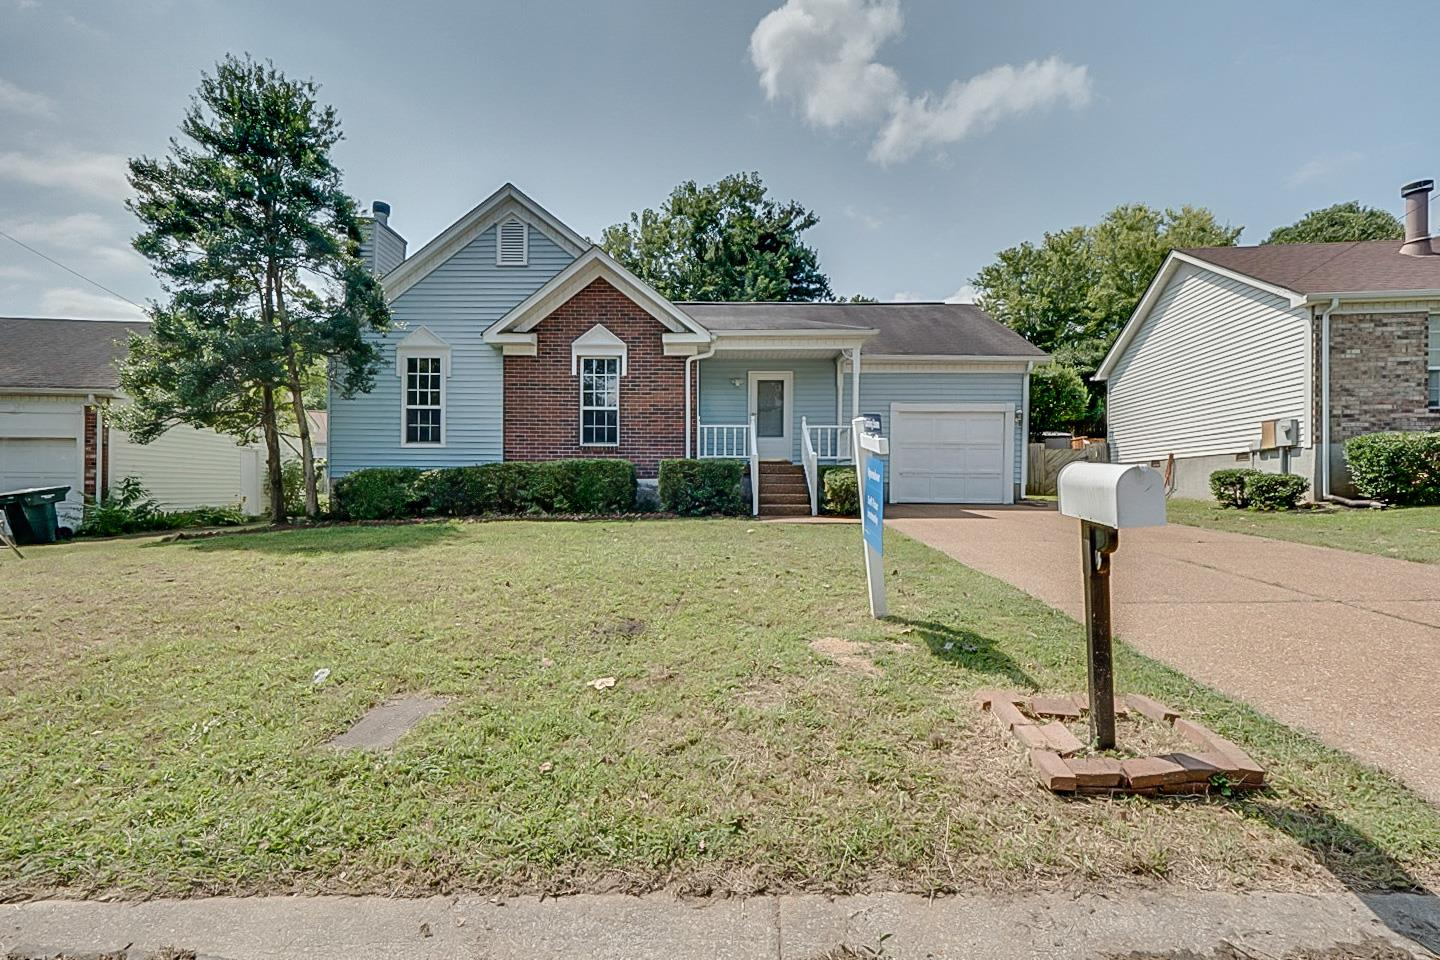 1432 Hunters Branch Rd, Nashville-Antioch in Davidson County County, TN 37013 Home for Sale